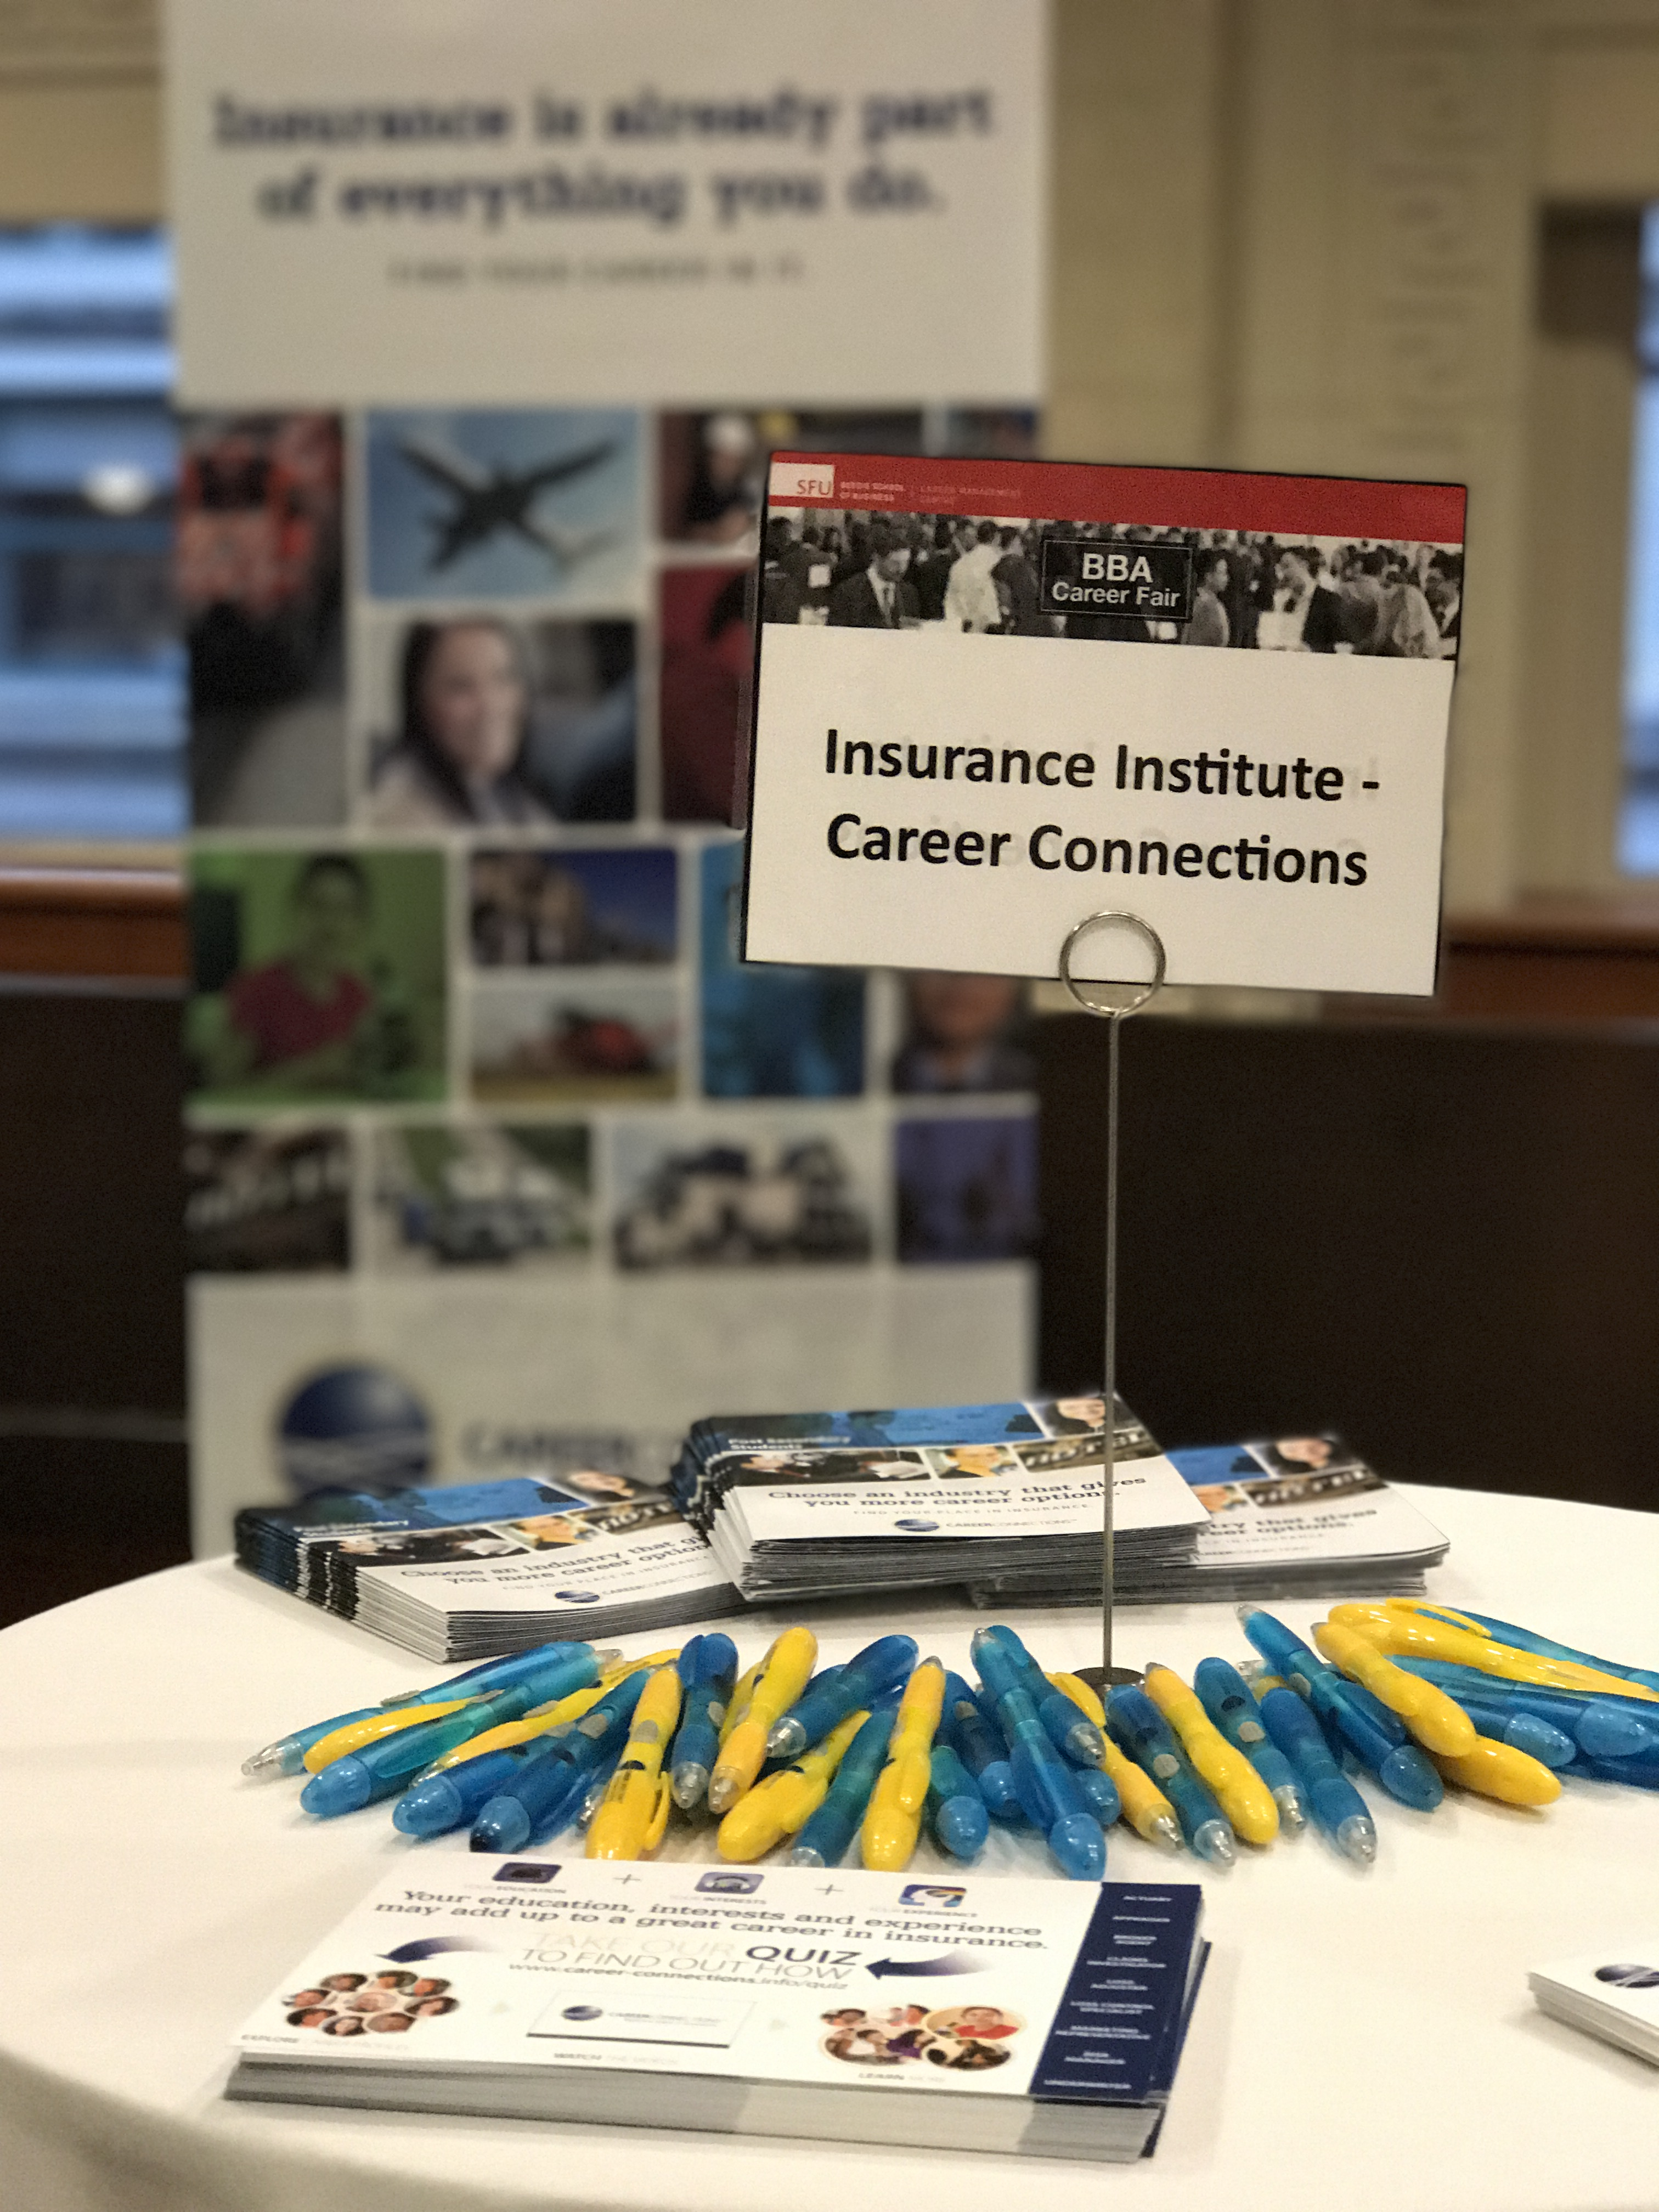 Display of Career Connections Materials at a Career Event